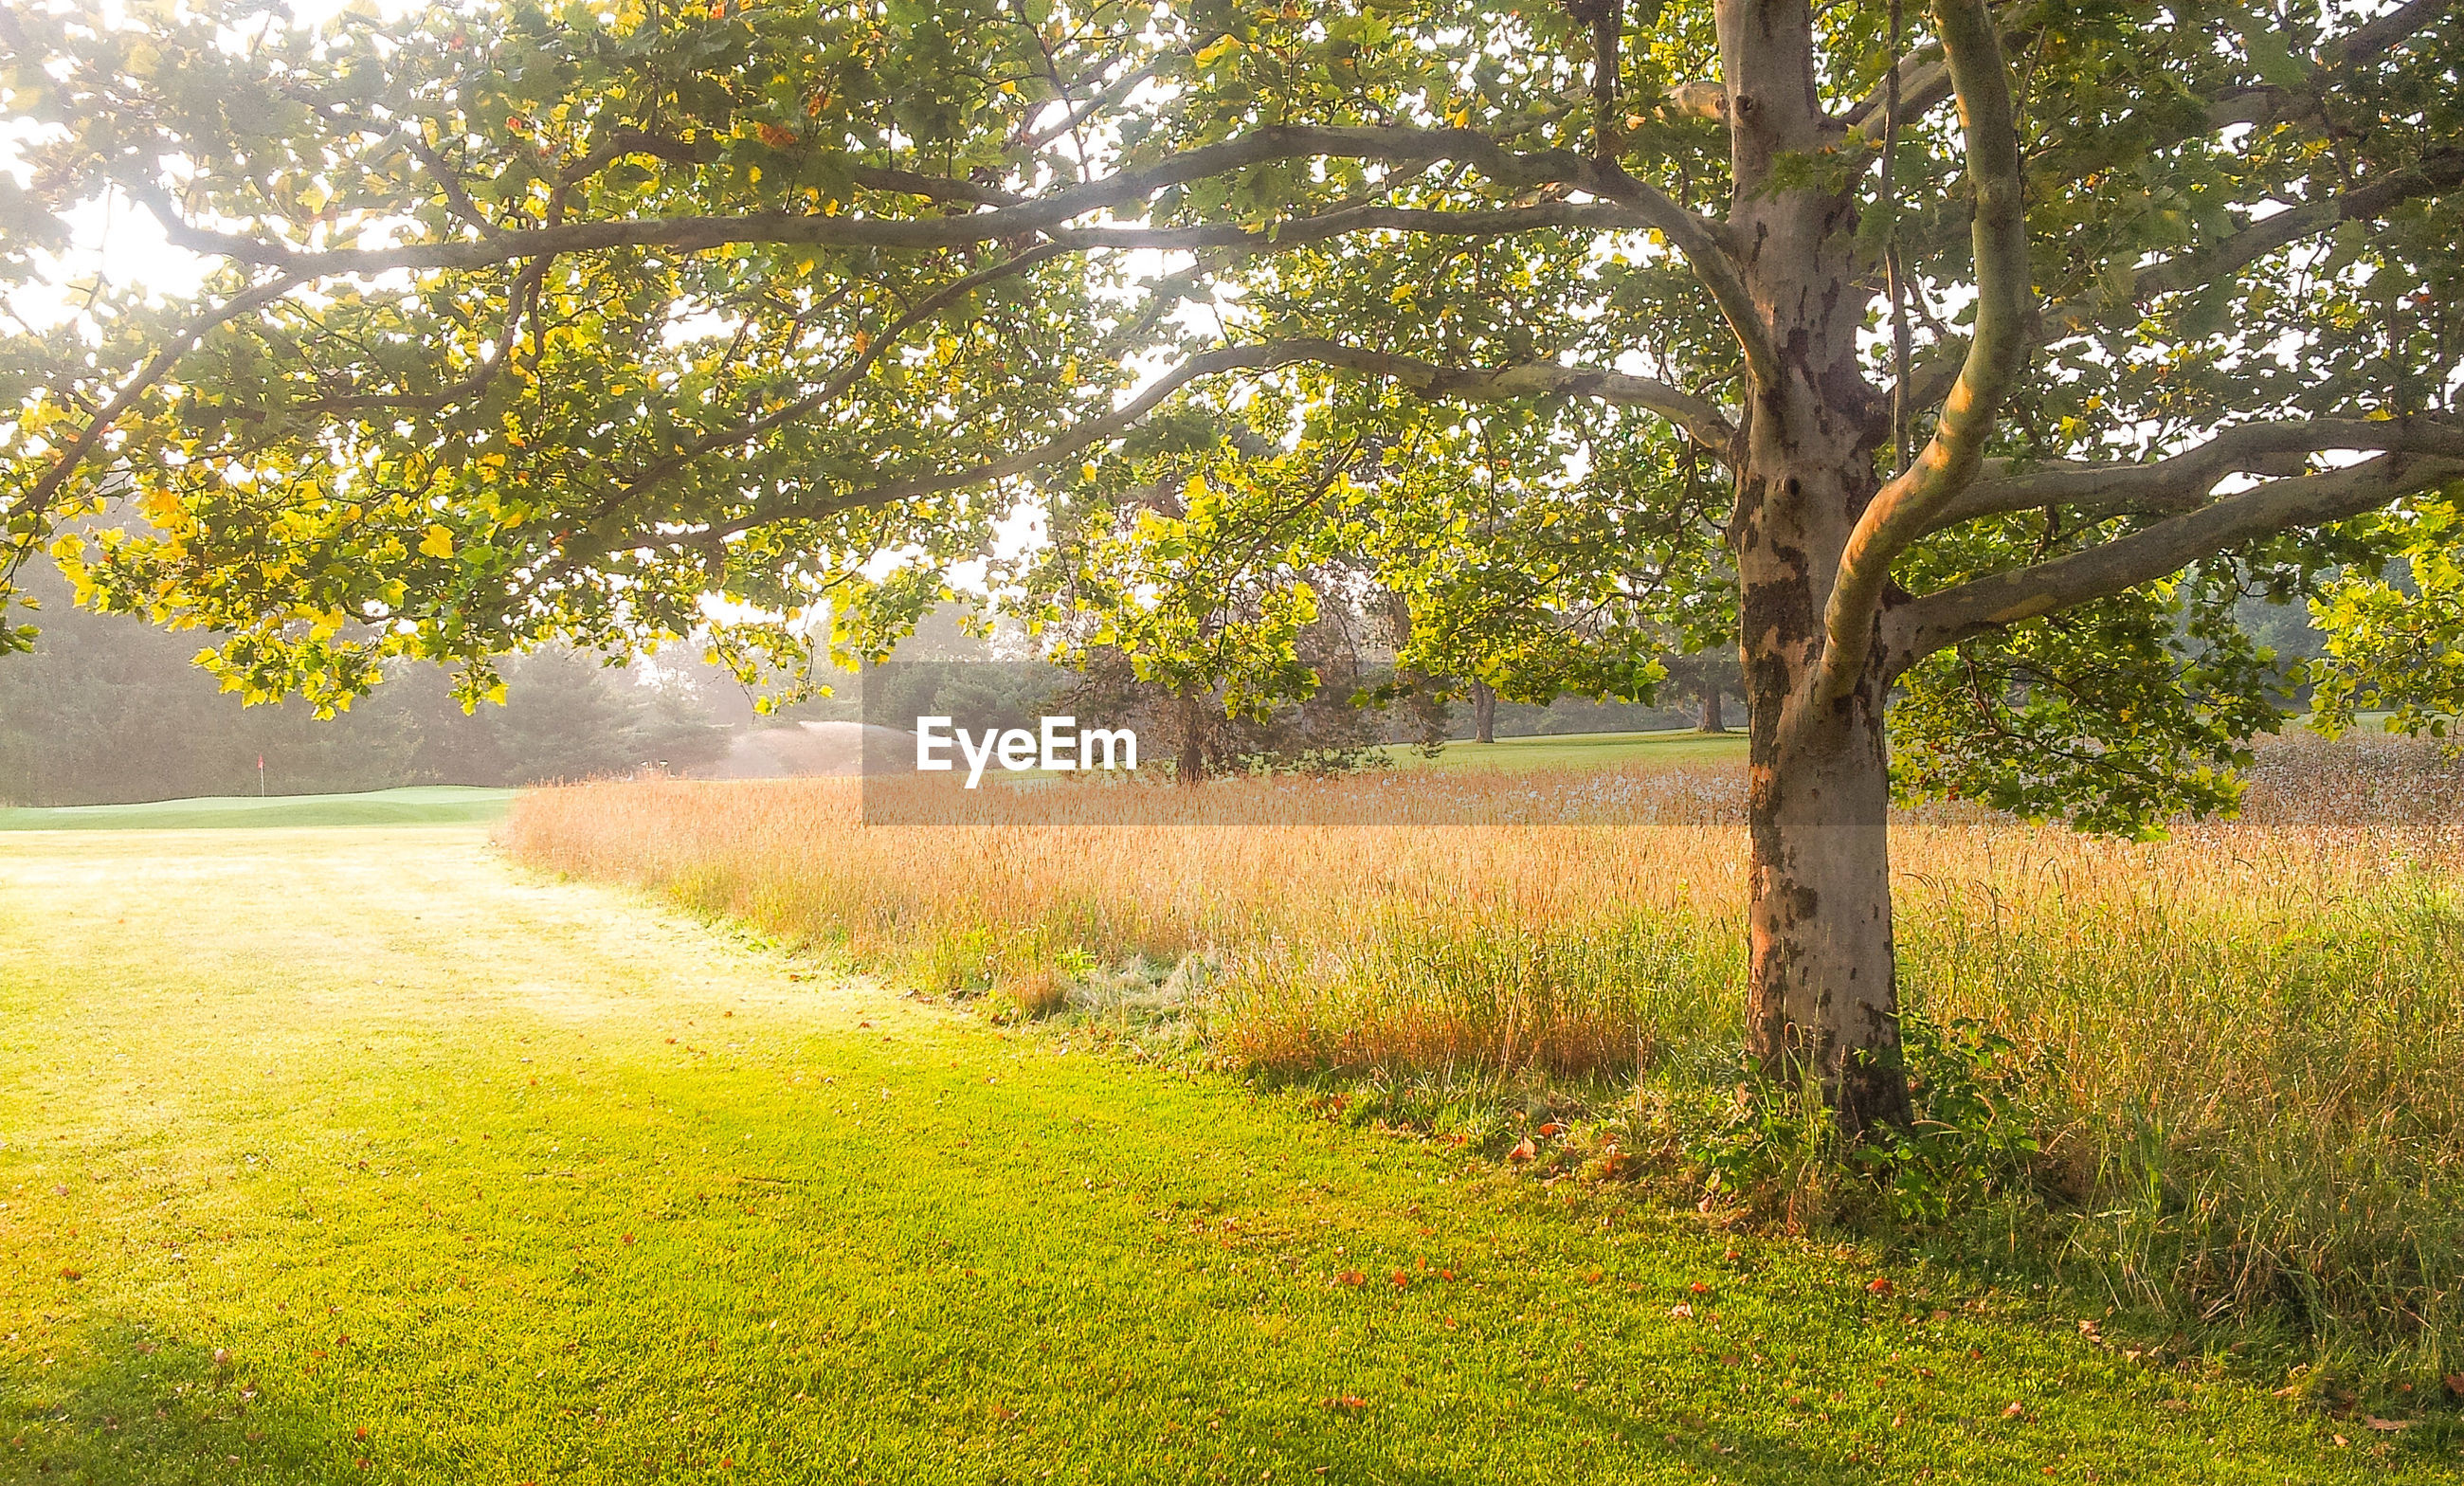 tree, growth, tranquility, green color, beauty in nature, tranquil scene, nature, grass, scenics, field, tree trunk, landscape, branch, sunlight, yellow, plant, day, footpath, outdoors, idyllic